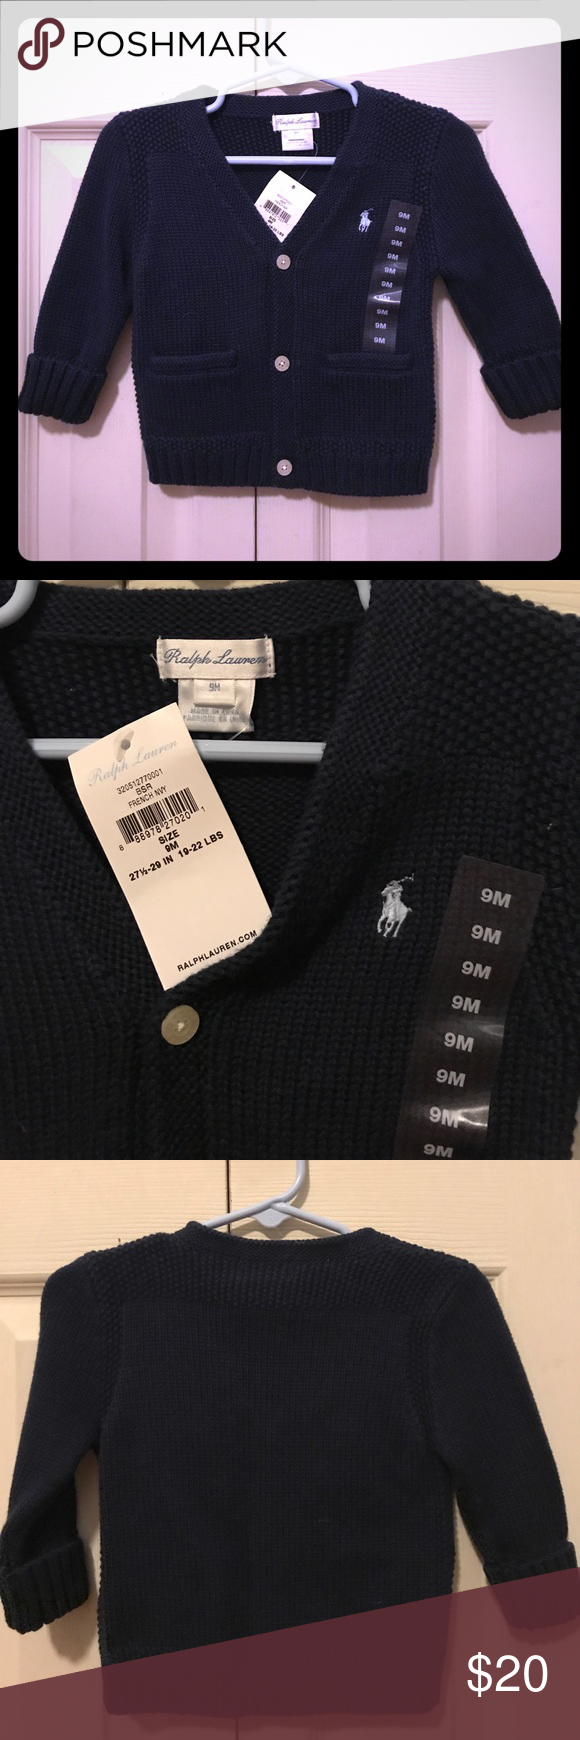 Gorgeous BNWT Ralph Lauren cardigan for baby boy Navy blue 3-button cardigan with 2 pockets. Size 9 months. Fits 19-22 lbs. Ralph Lauren Shirts & Tops Sweaters